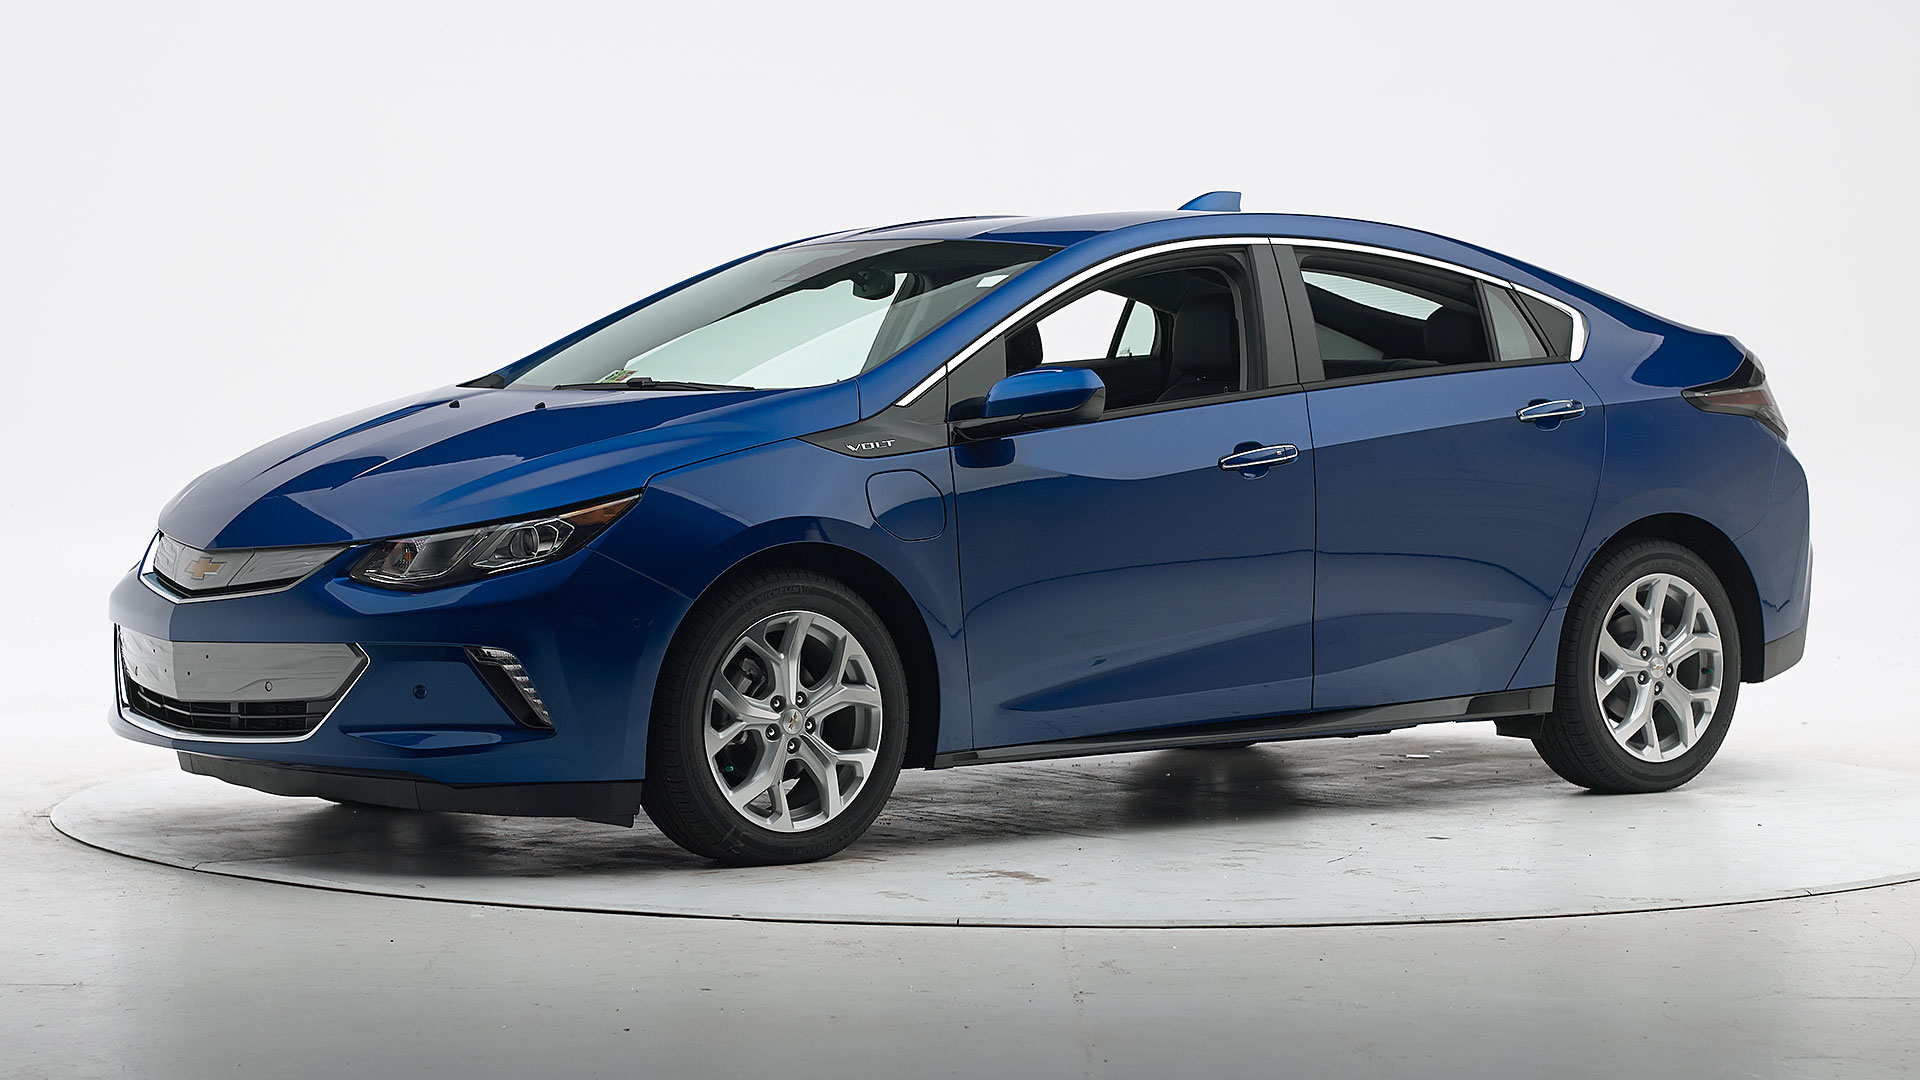 2018 Chevrolet Volt 4-door hatchback